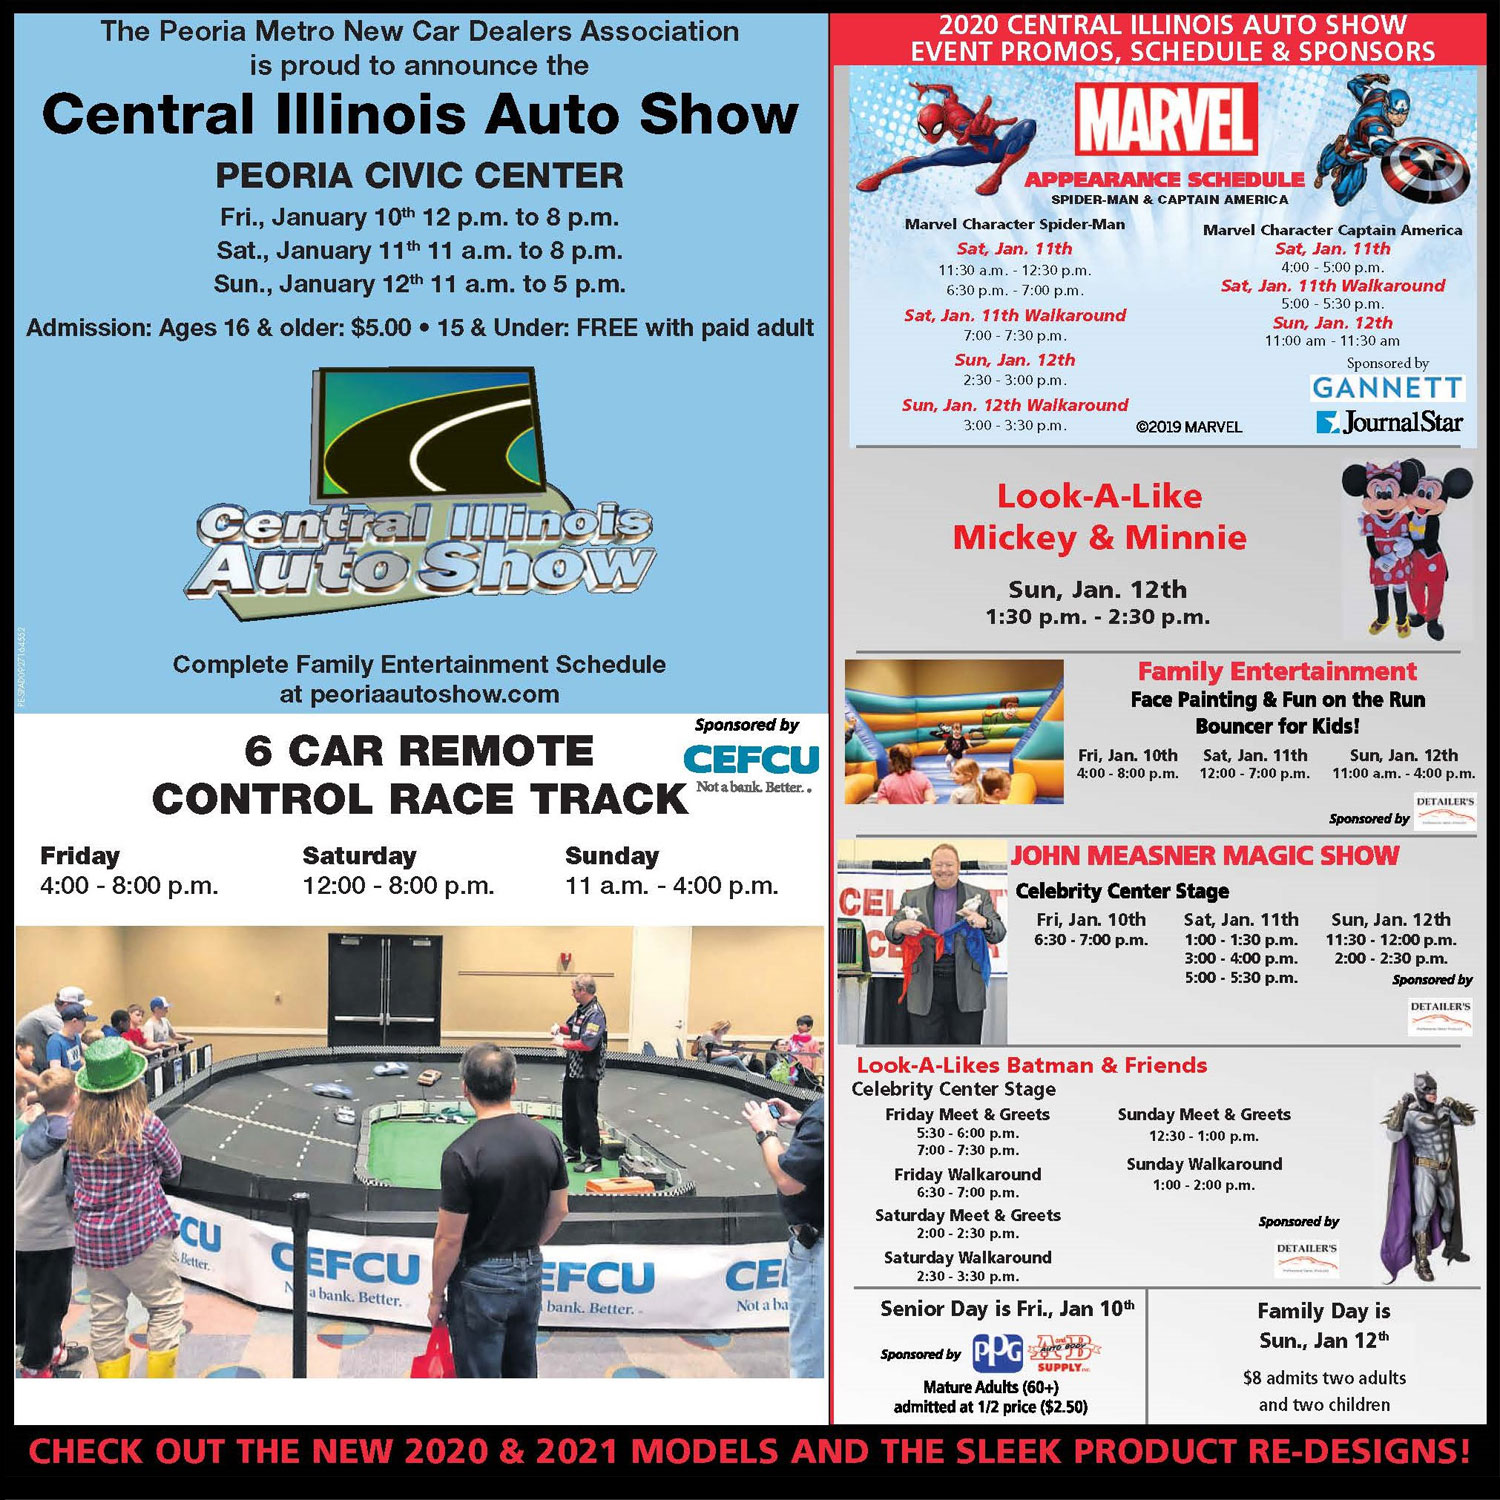 2020 Central Illinois Auto Show Event Promos, Schedule and Sponsors